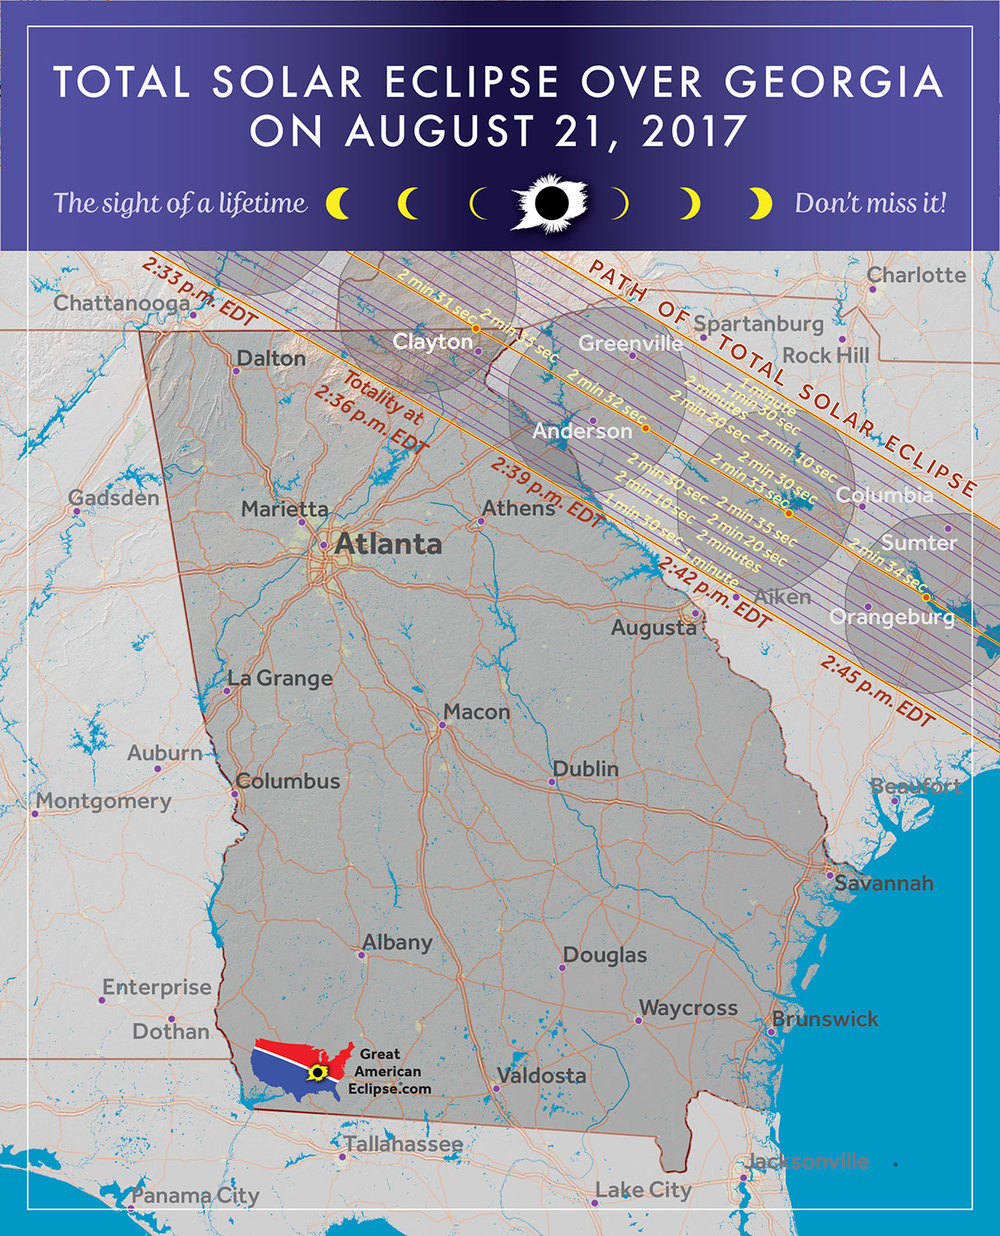 Many people from Atlanta will drive north into the path of totality.